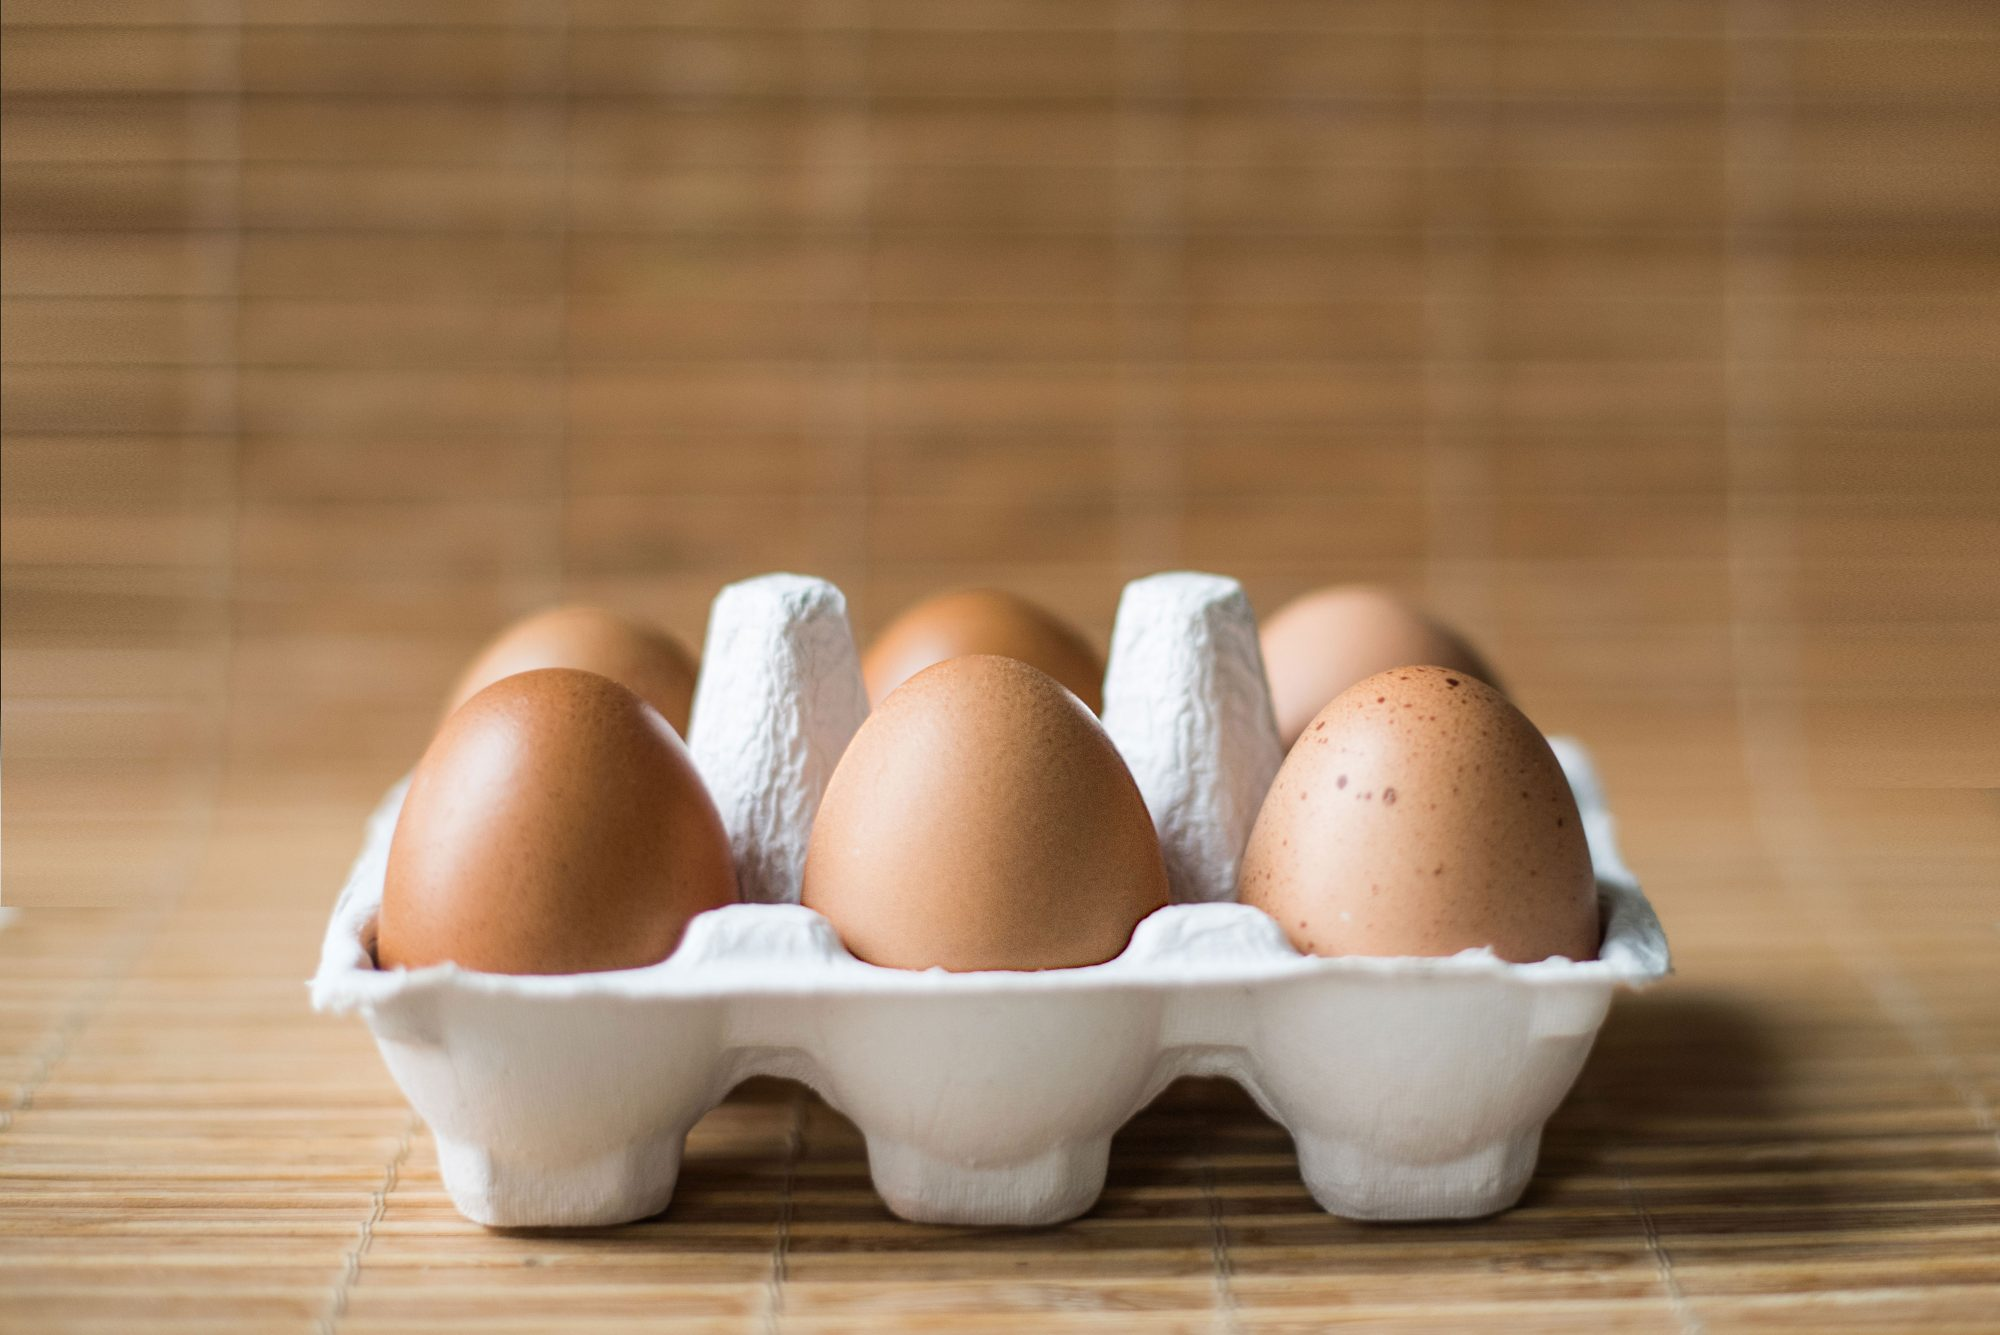 3 Ways to Tell If Eggs Have Gone Bad